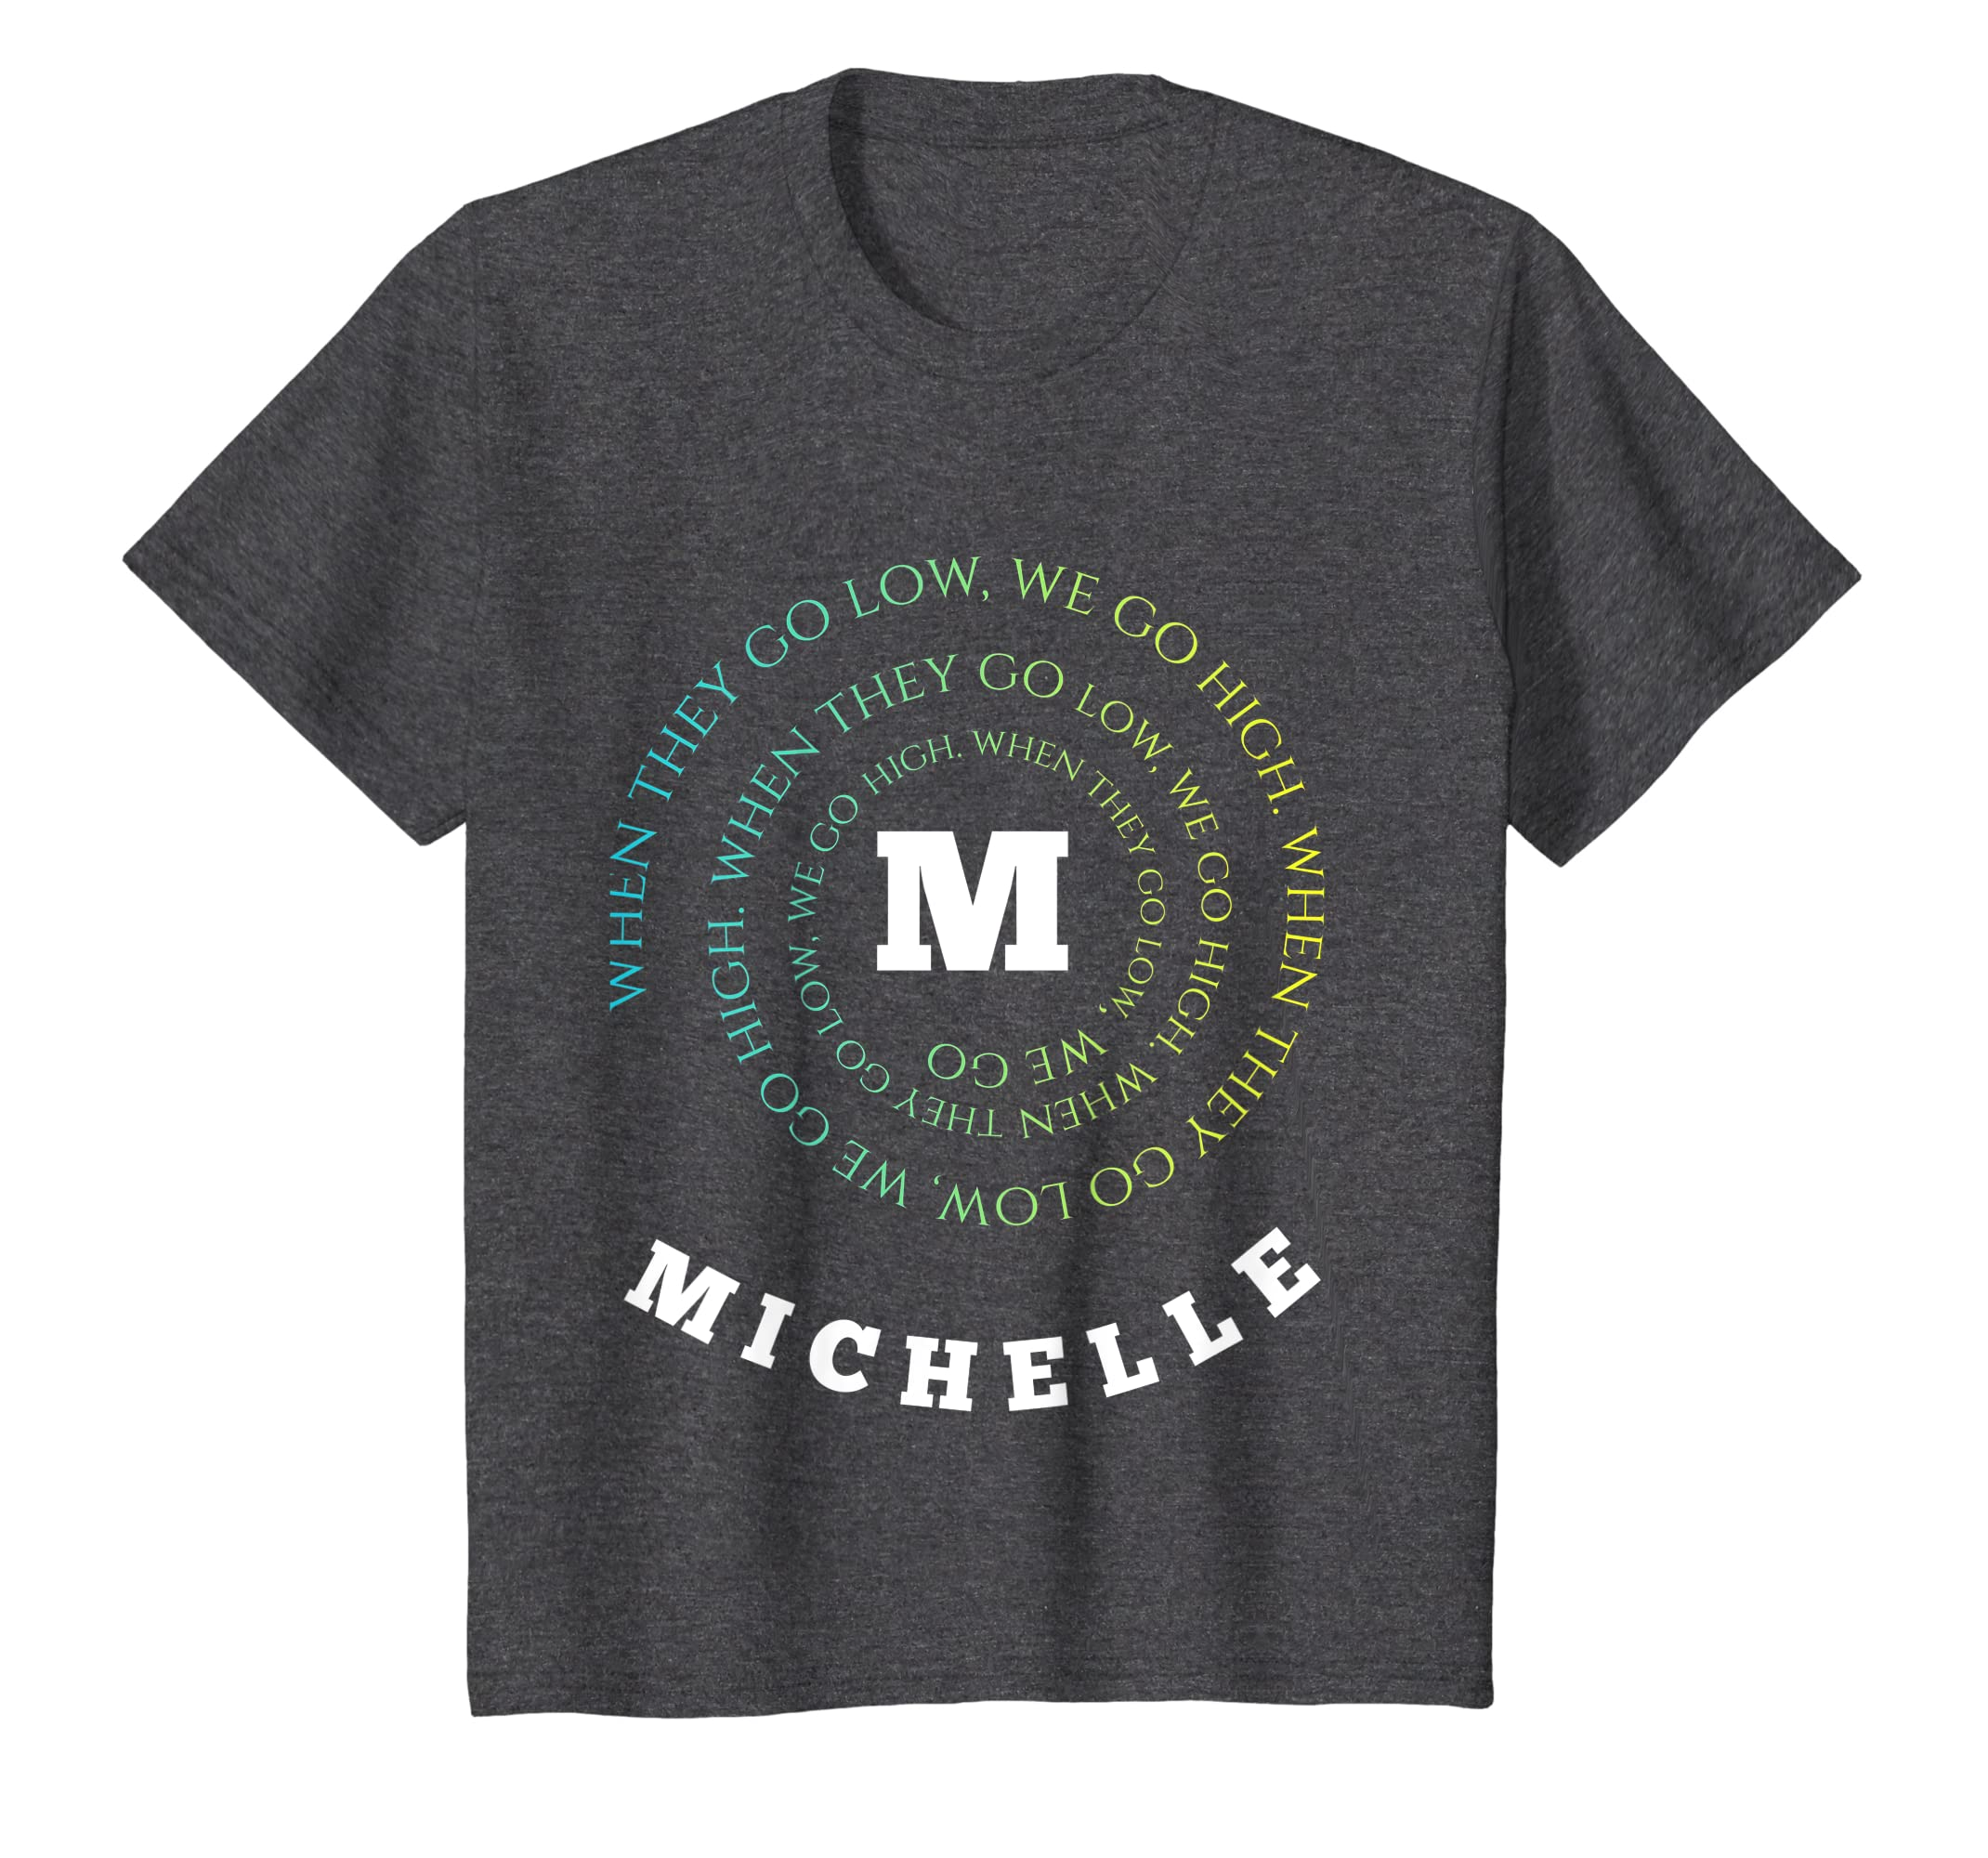 e9bbbb624d0 Amazon.com  Michelle Obama T shirt when they go low we go high  Clothing